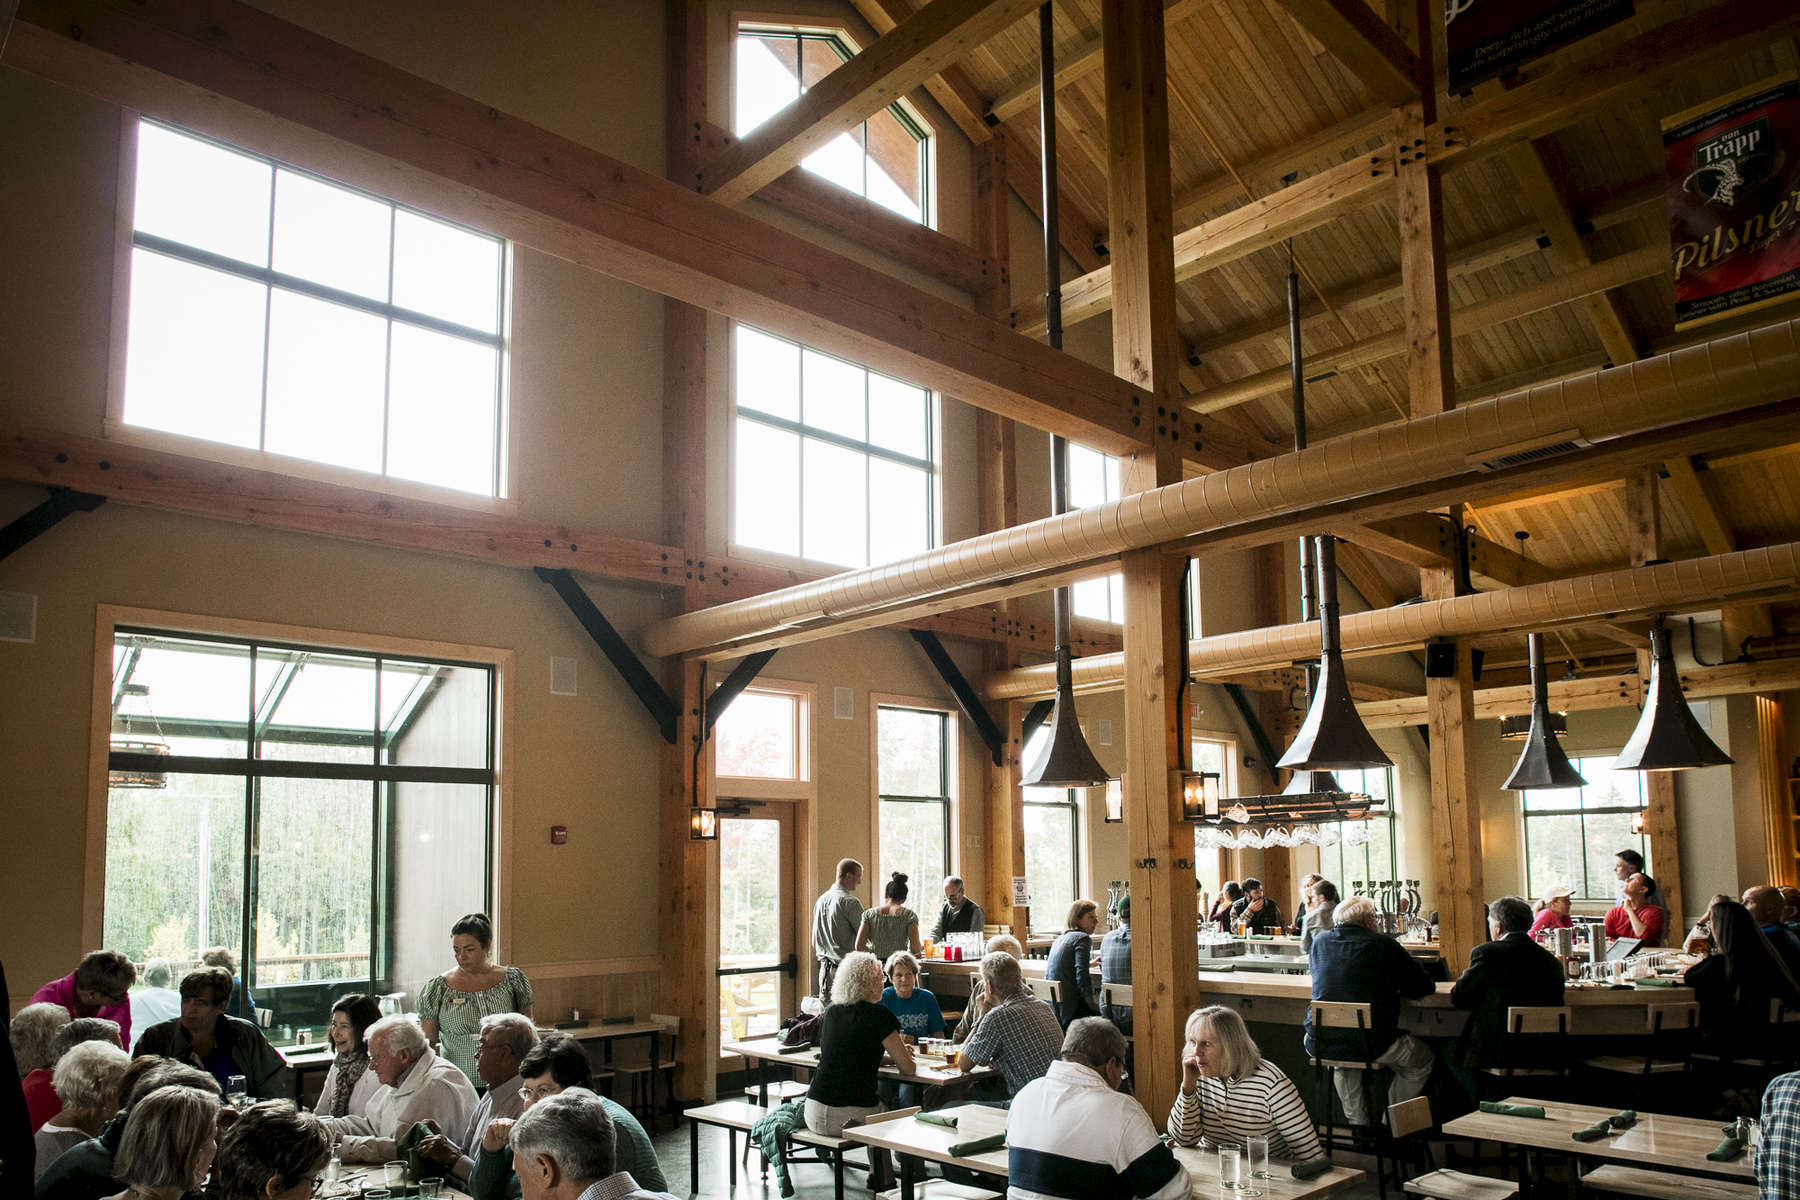 Gorgeous exposed beams tower above happy patrons enjoying local brews at Von Trapp Brewing Bierhall in Stowe, Vermont